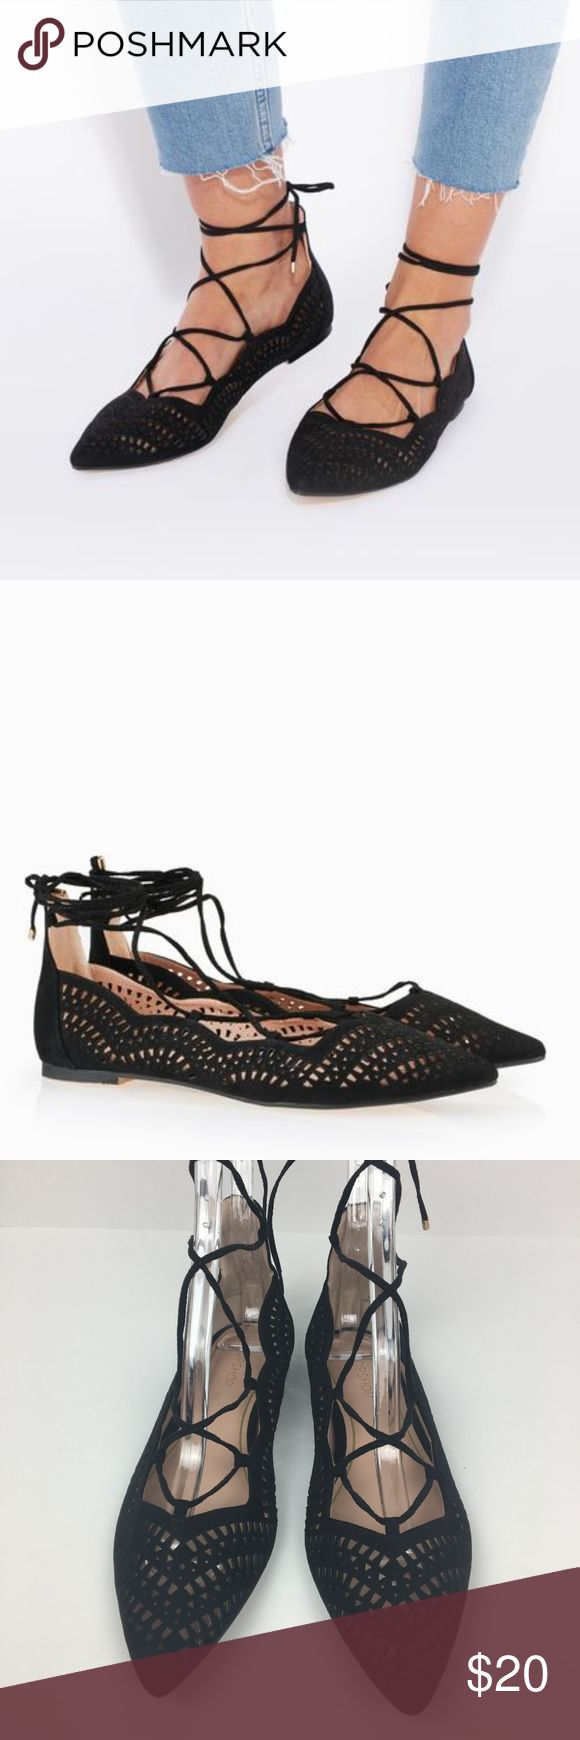 TOPSHOP Faser Laser Cut Ghillie Ballet Flats Pointed toe black leather look ballet flats. Ghillie lace-up tie and intricate all-over laser cut details. 100% polyurethane. Spot clean. Size is EUR 38. No box. Offers welcomed.   Men's Closet: @ofsunandman Kids' Closet: @thelittlesuns  Instagram: @bringingupsuns Topshop Shoes Flats & Loafers